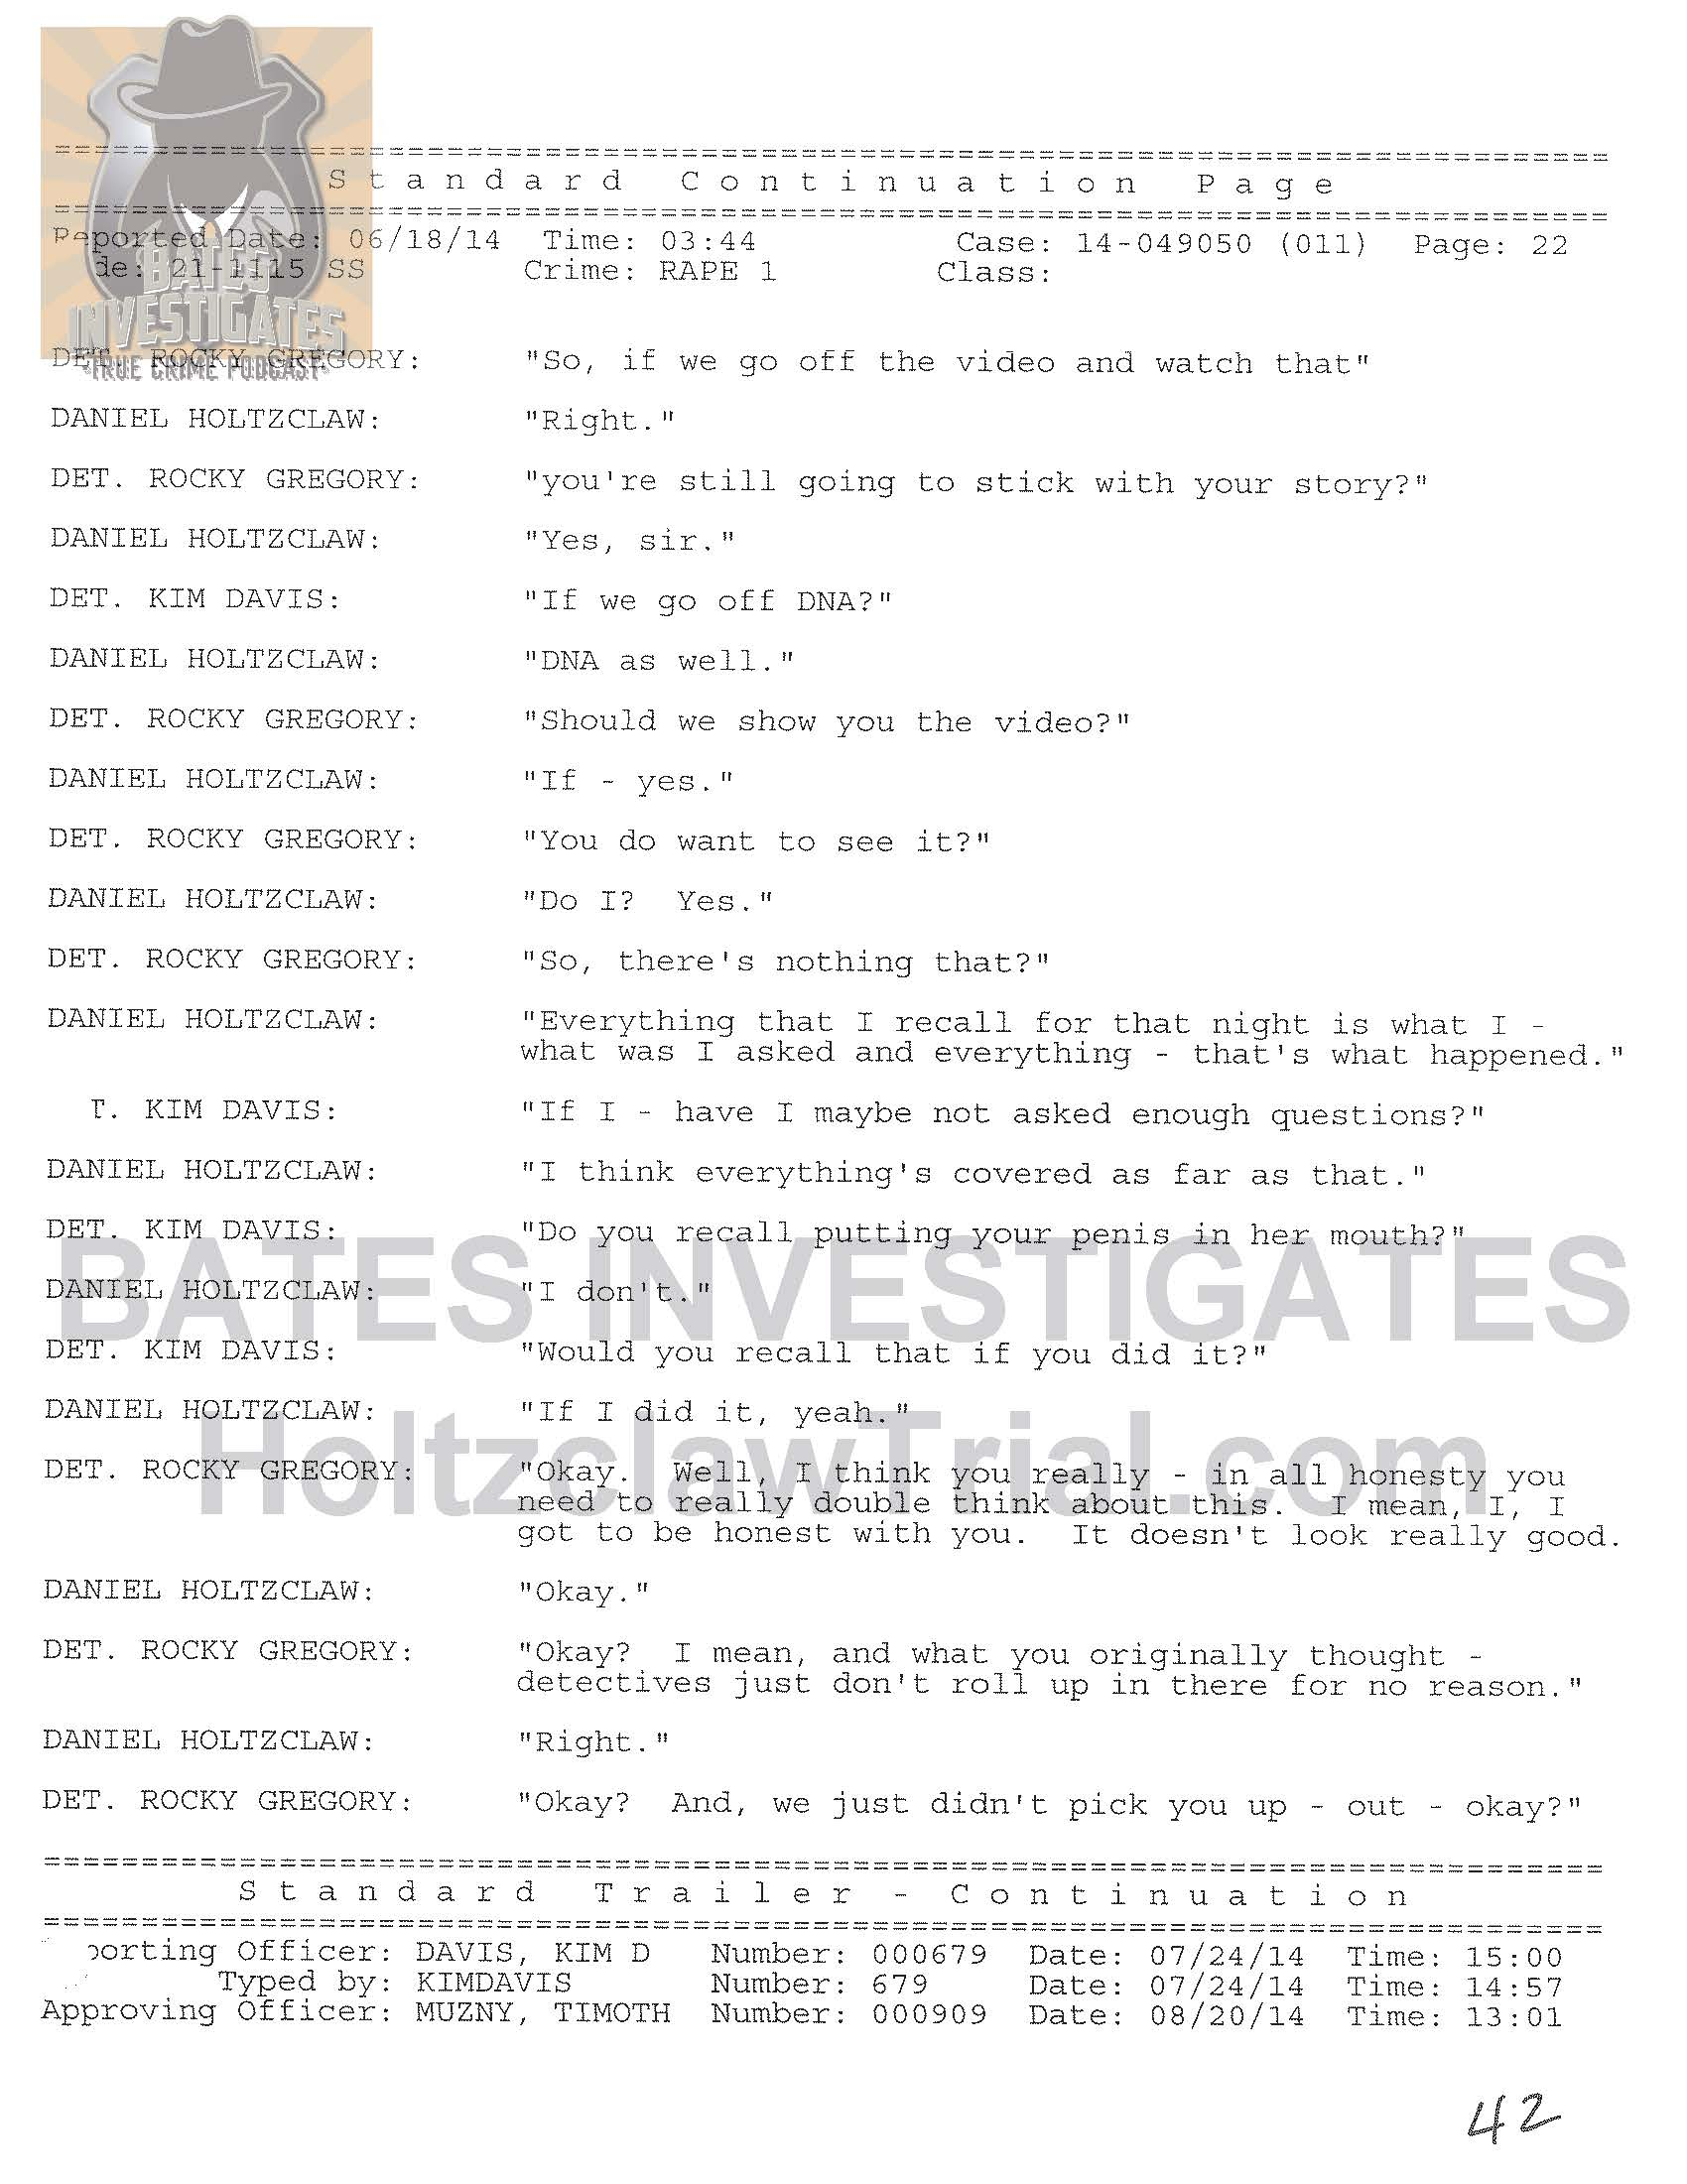 Holtzclaw Interrogation Transcript - Ep02 Redacted_Page_22.jpg